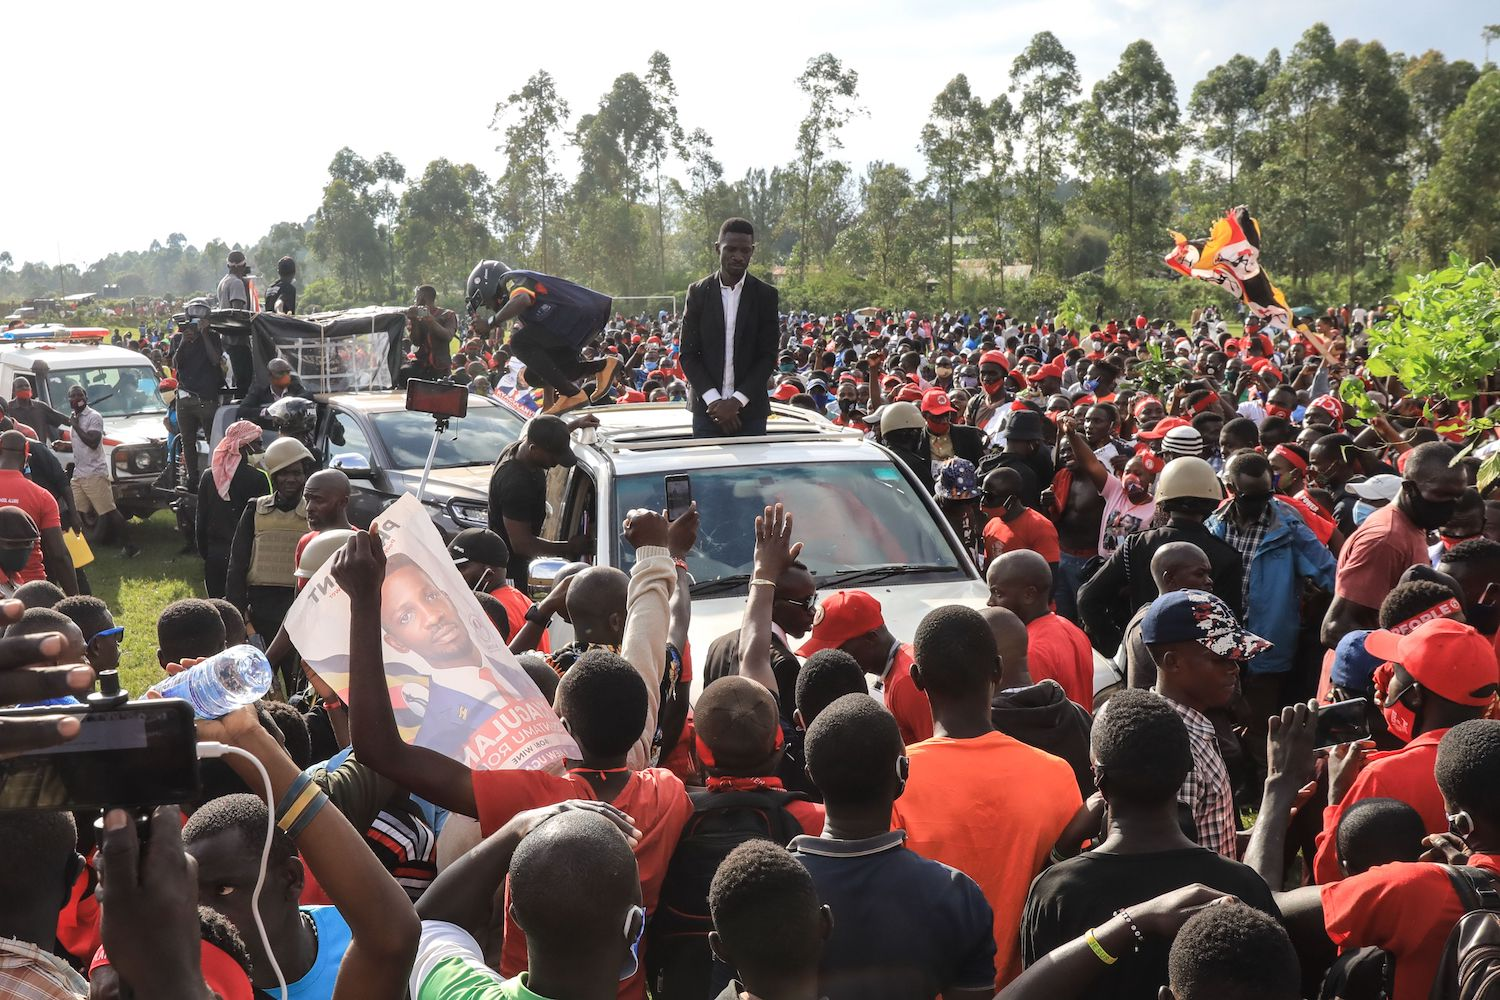 Opposition presidential candidate Bobi Wine stands through a car roof surrounded by supporters during a presidential rally in Fort Portal, Uganda, on Nov. 23.